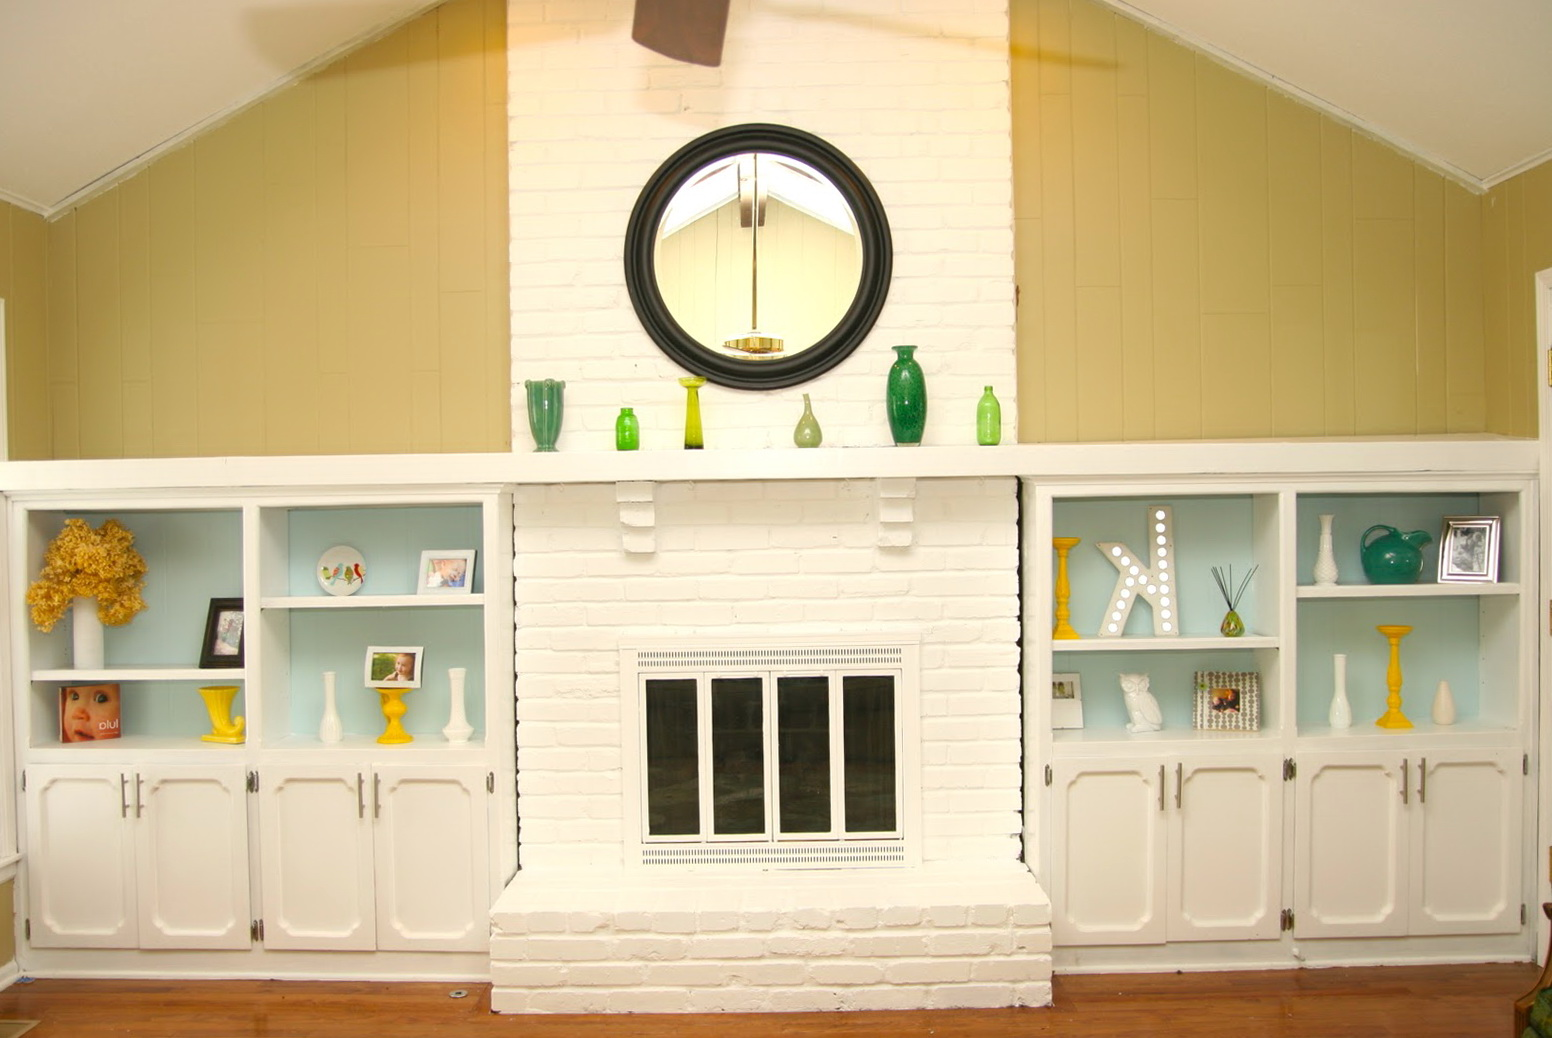 Fireplace Brick Painted White | Home Design Ideas